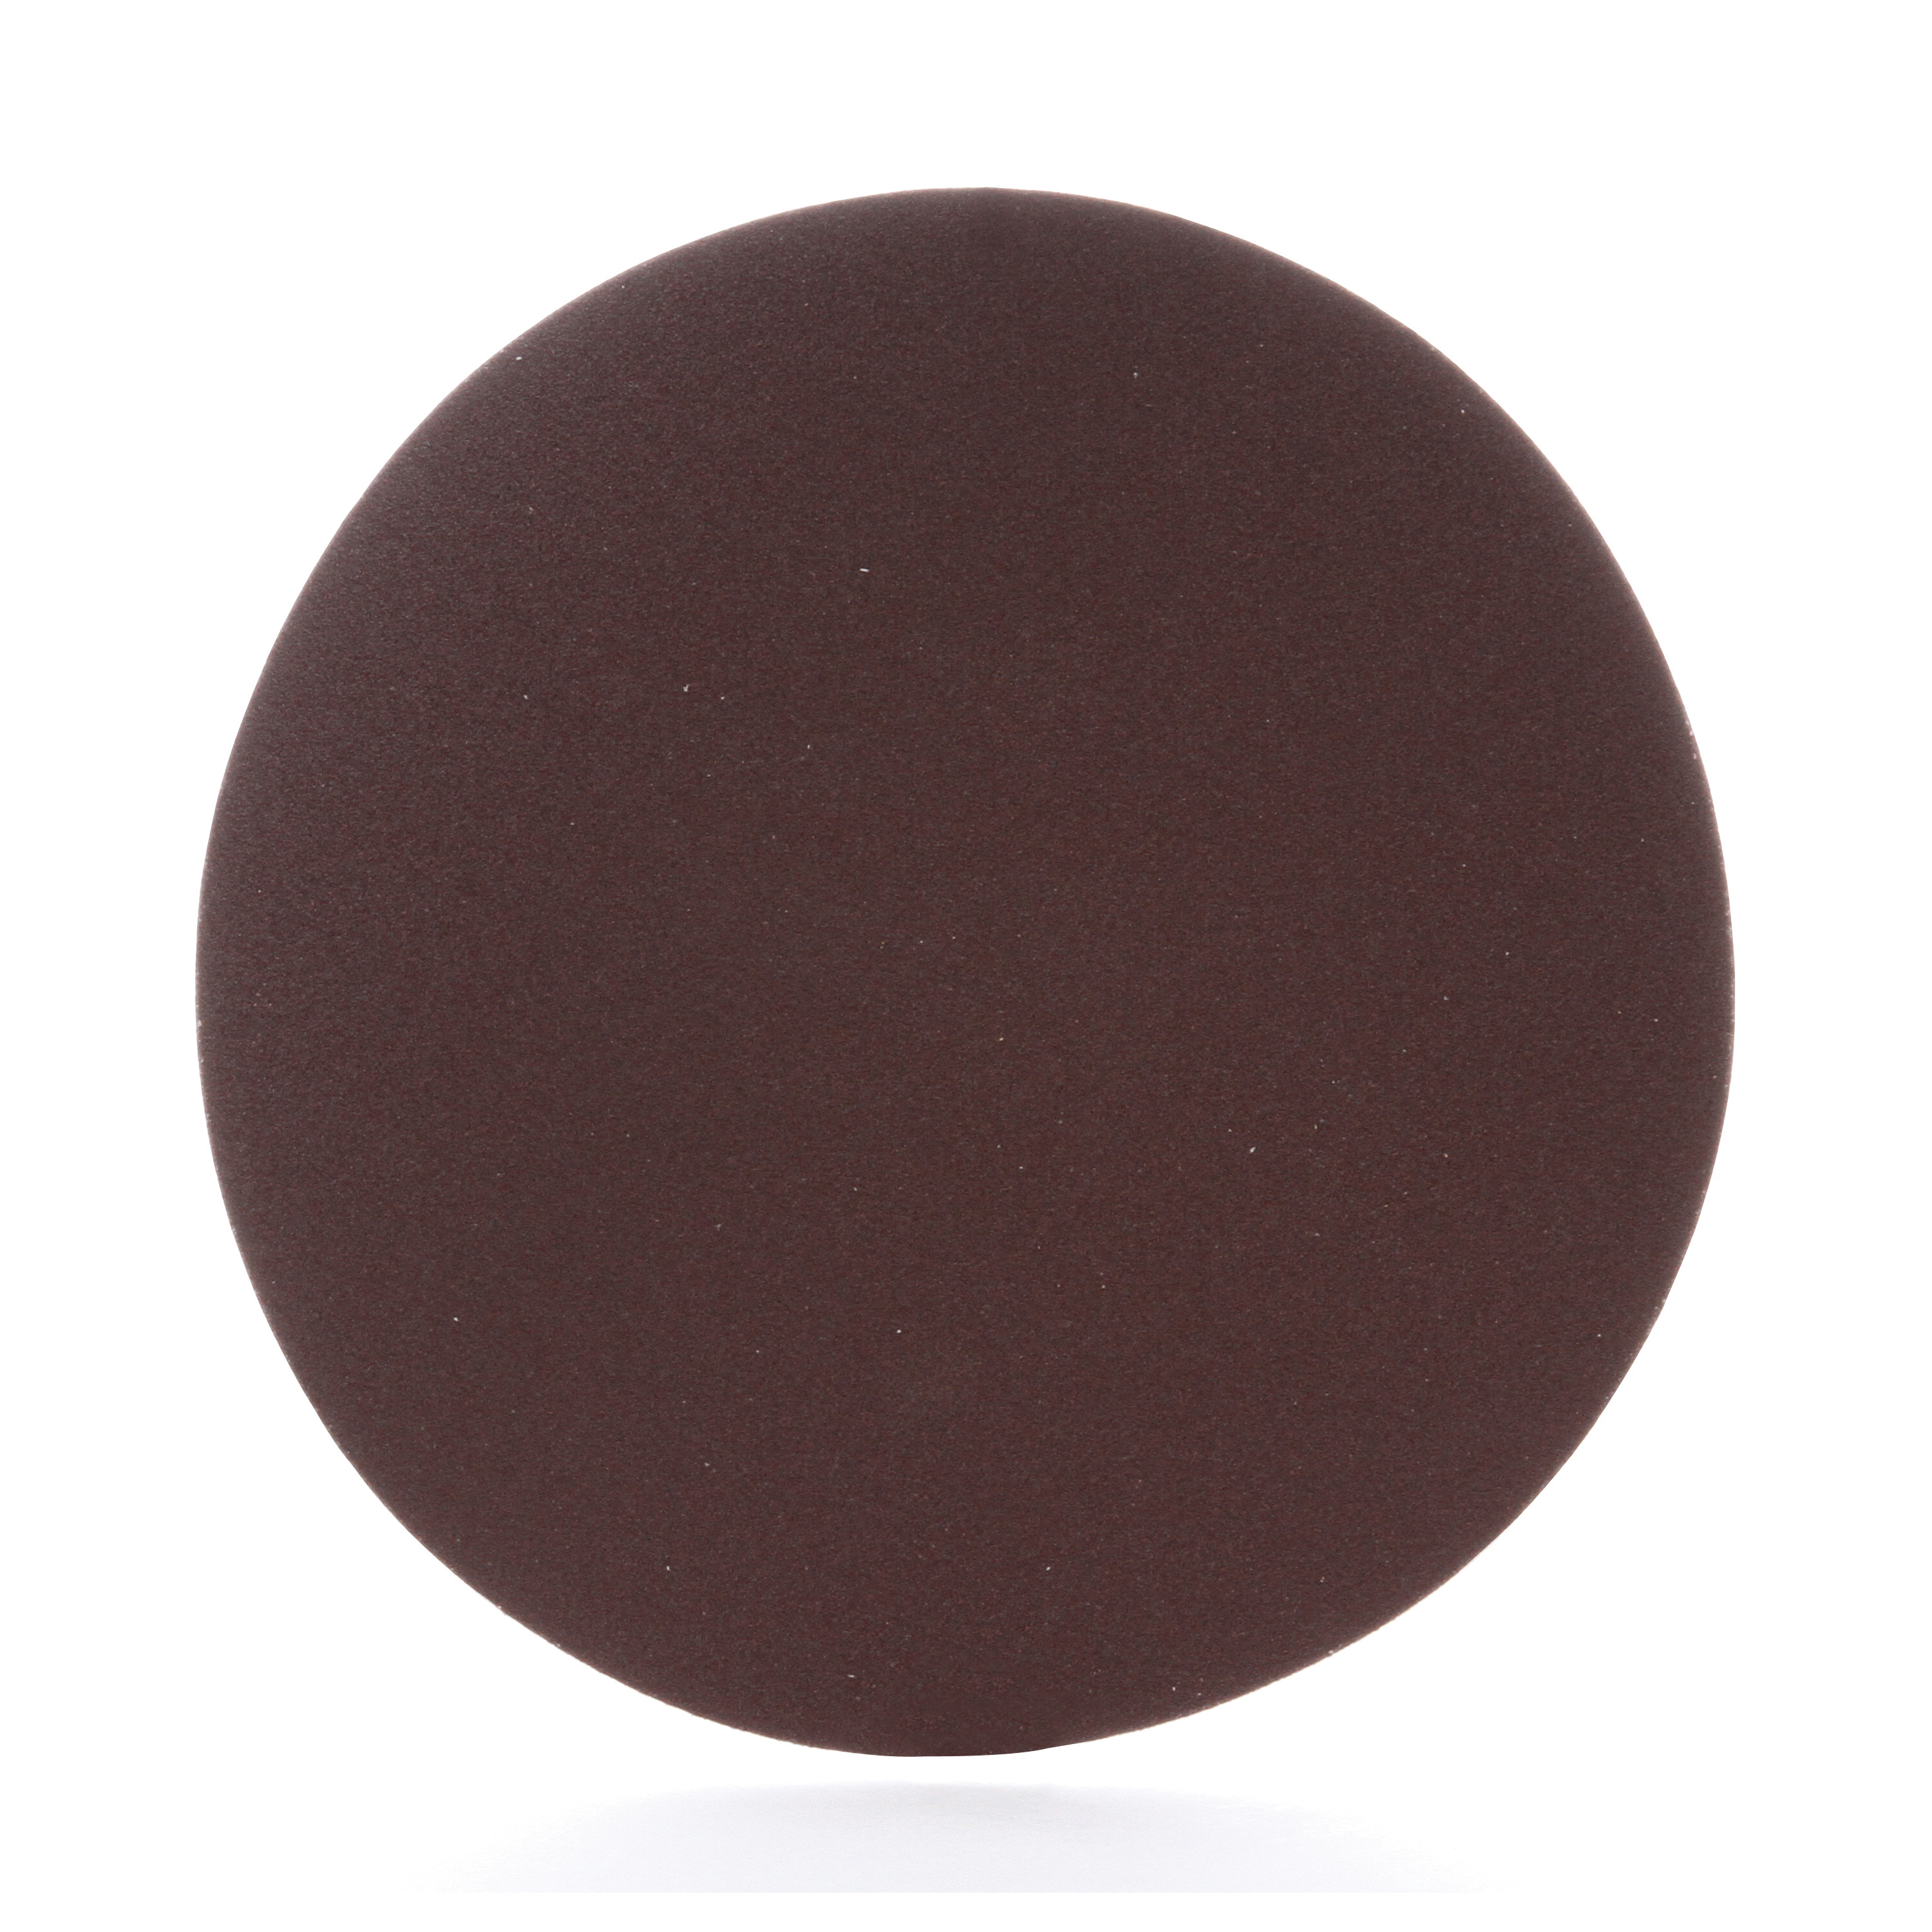 Stikit™ 051111-50463 General Purpose PSA Open Coated Abrasive Disc With Liner, 6 in Dia, P180 Grit, Very Fine Grade, Aluminum Oxide Abrasive, Cloth Backing